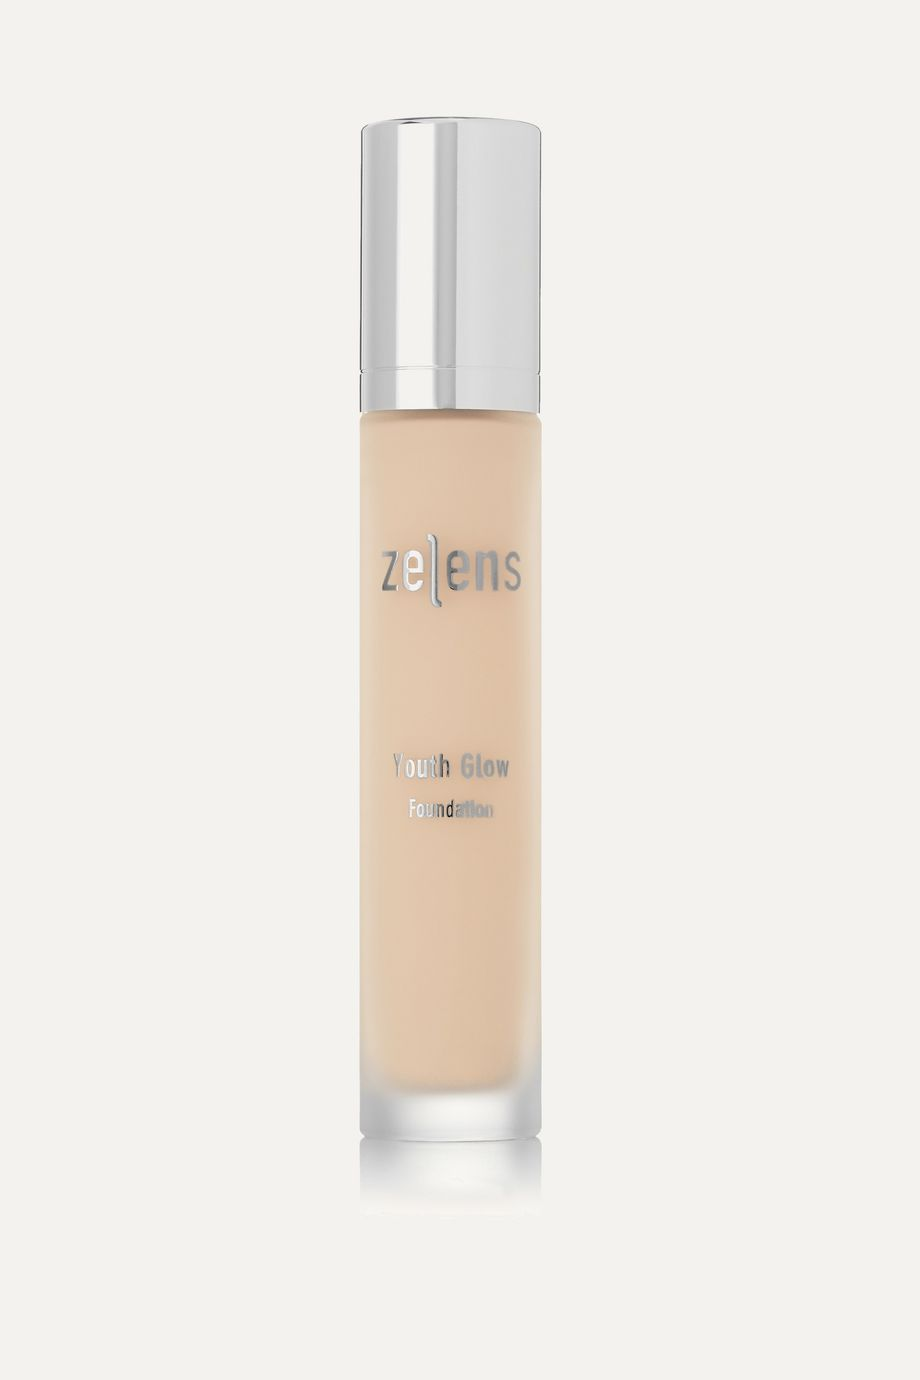 Zelens Youth Glow Foundation - Cream, 30ml